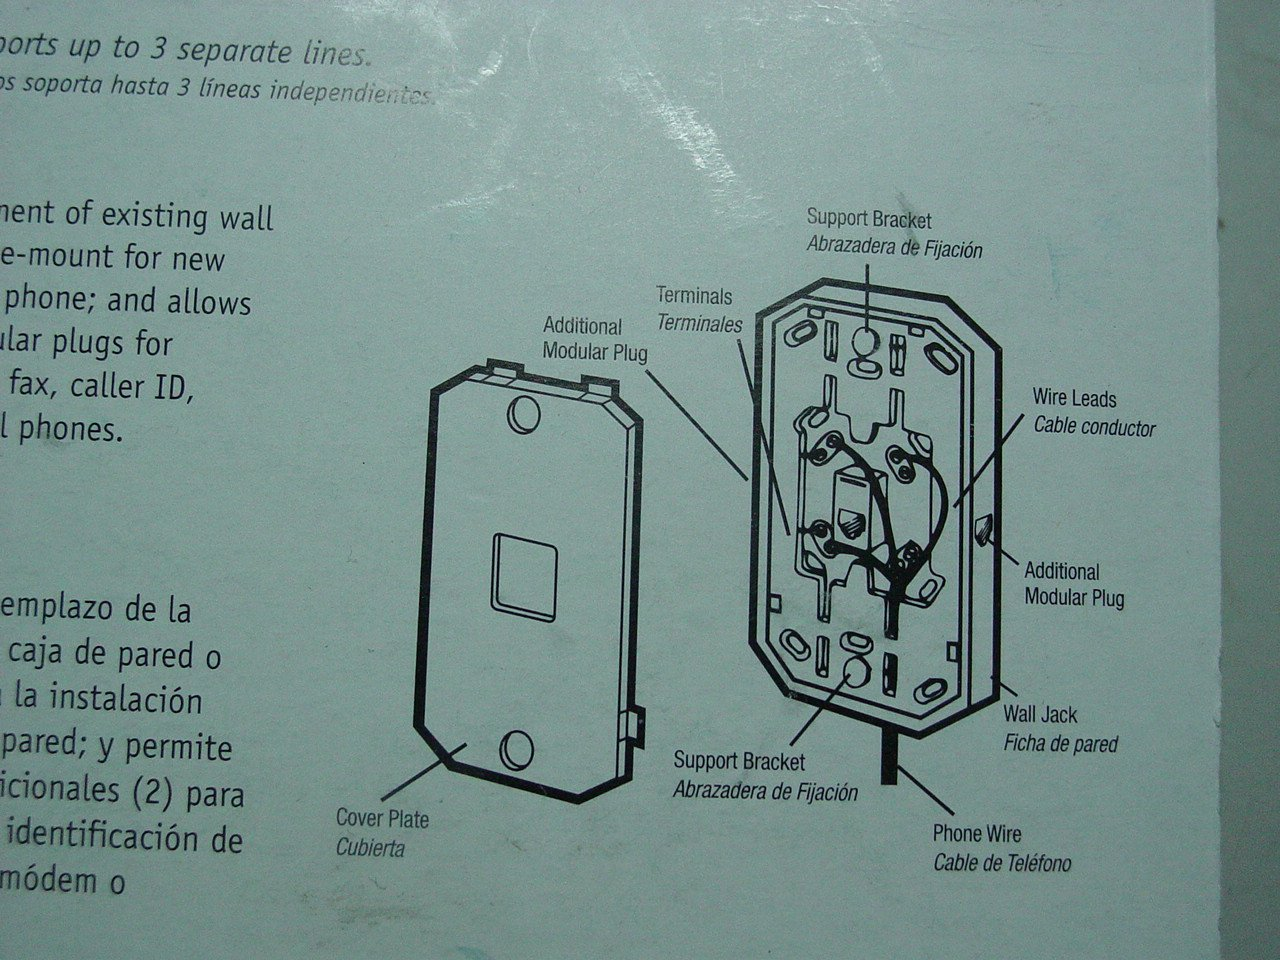 Wall Mount With 3 Jacks Modular Outlet For Phone Or Jack Wiring Diagram In Addition On Modem Connections Electronics